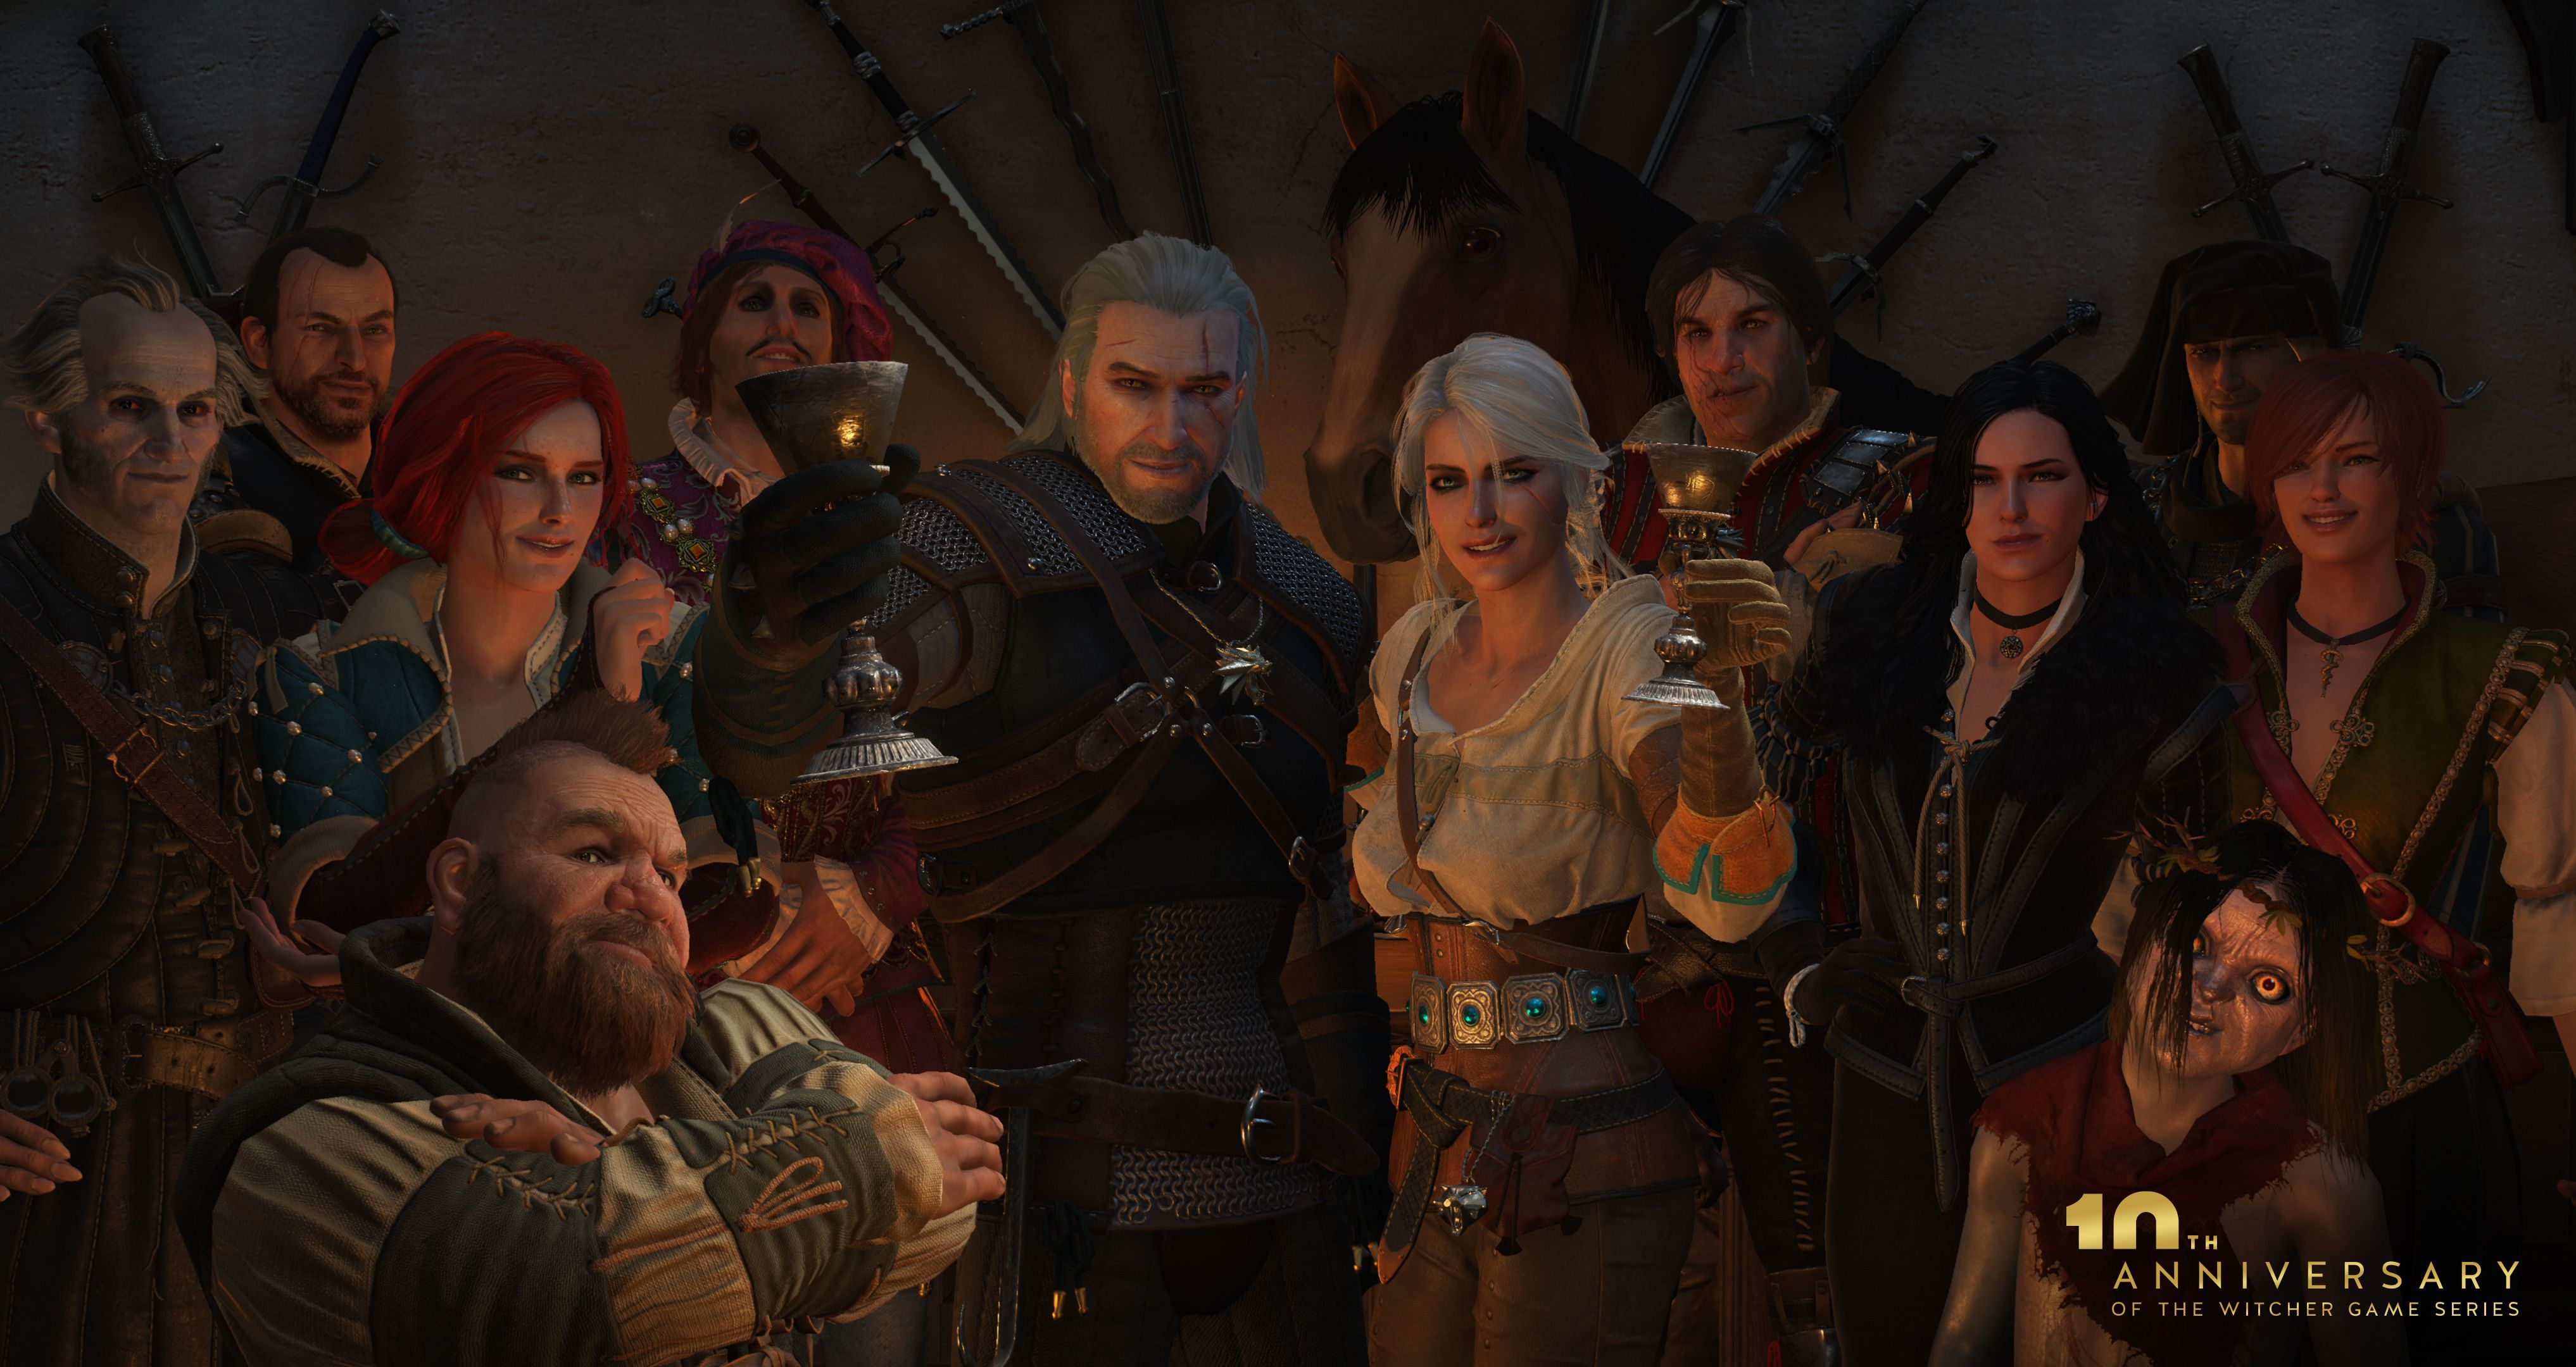 /the-best-moments-in-the-witcher-3-d31q37is feature image